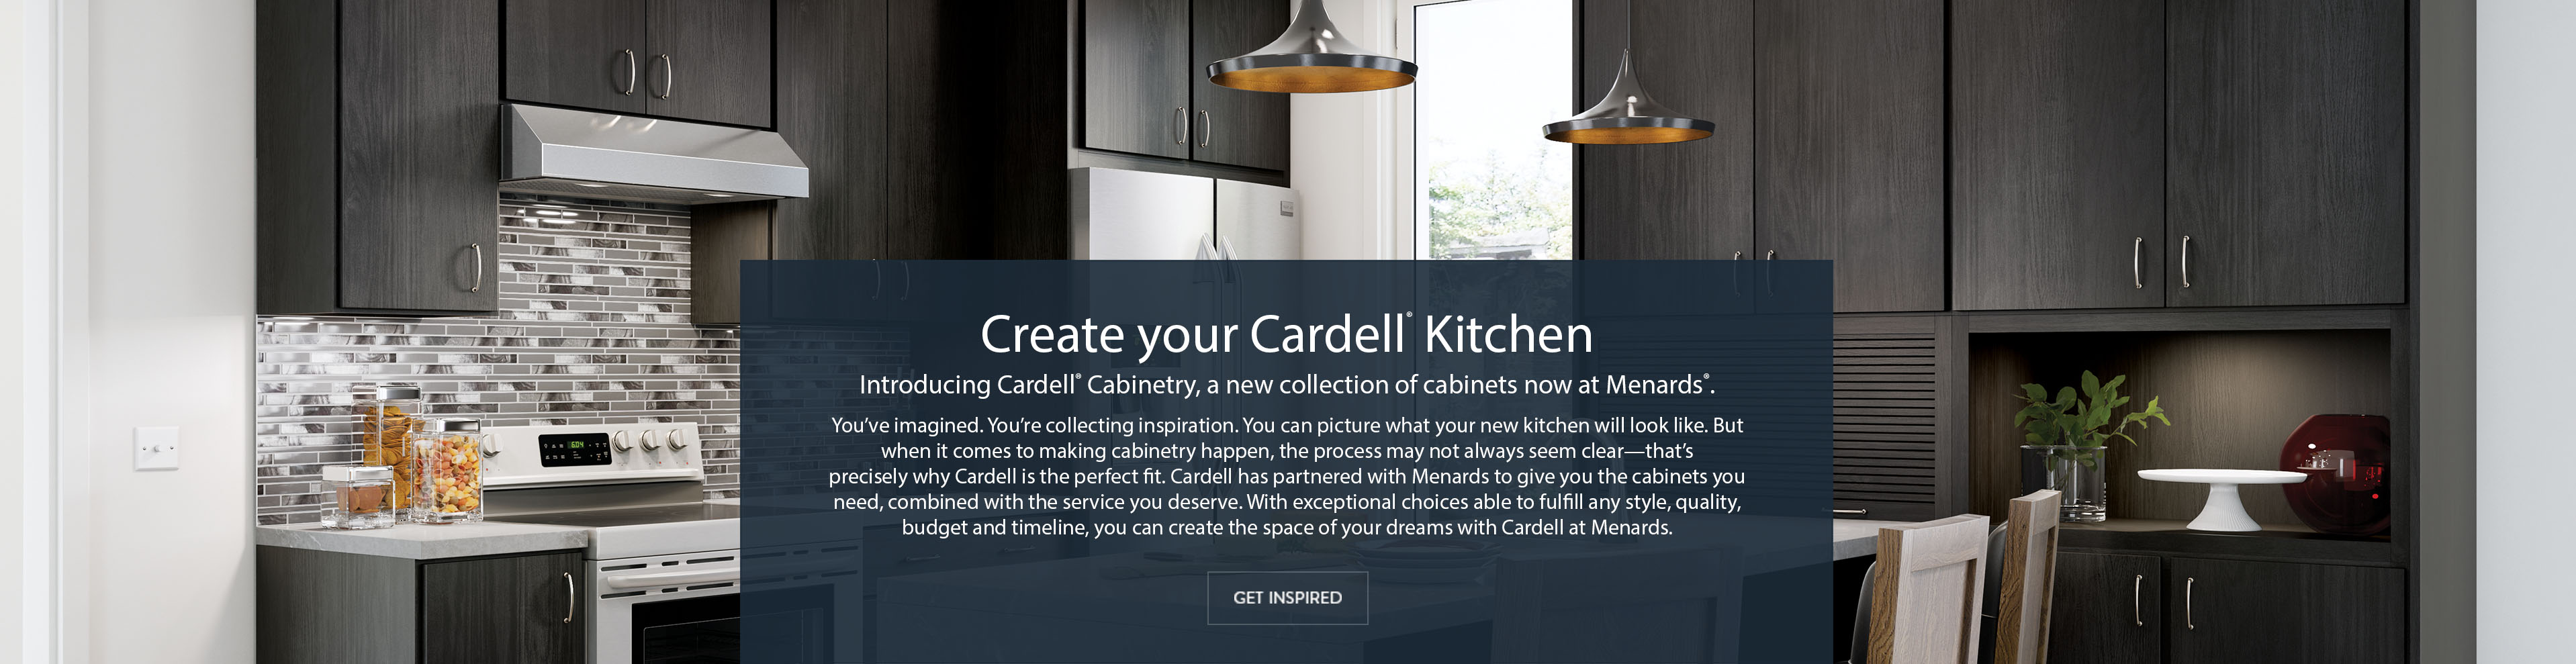 Outstanding Cardell Cabinetry Kitchen And Bathroom Cabinetry Download Free Architecture Designs Scobabritishbridgeorg